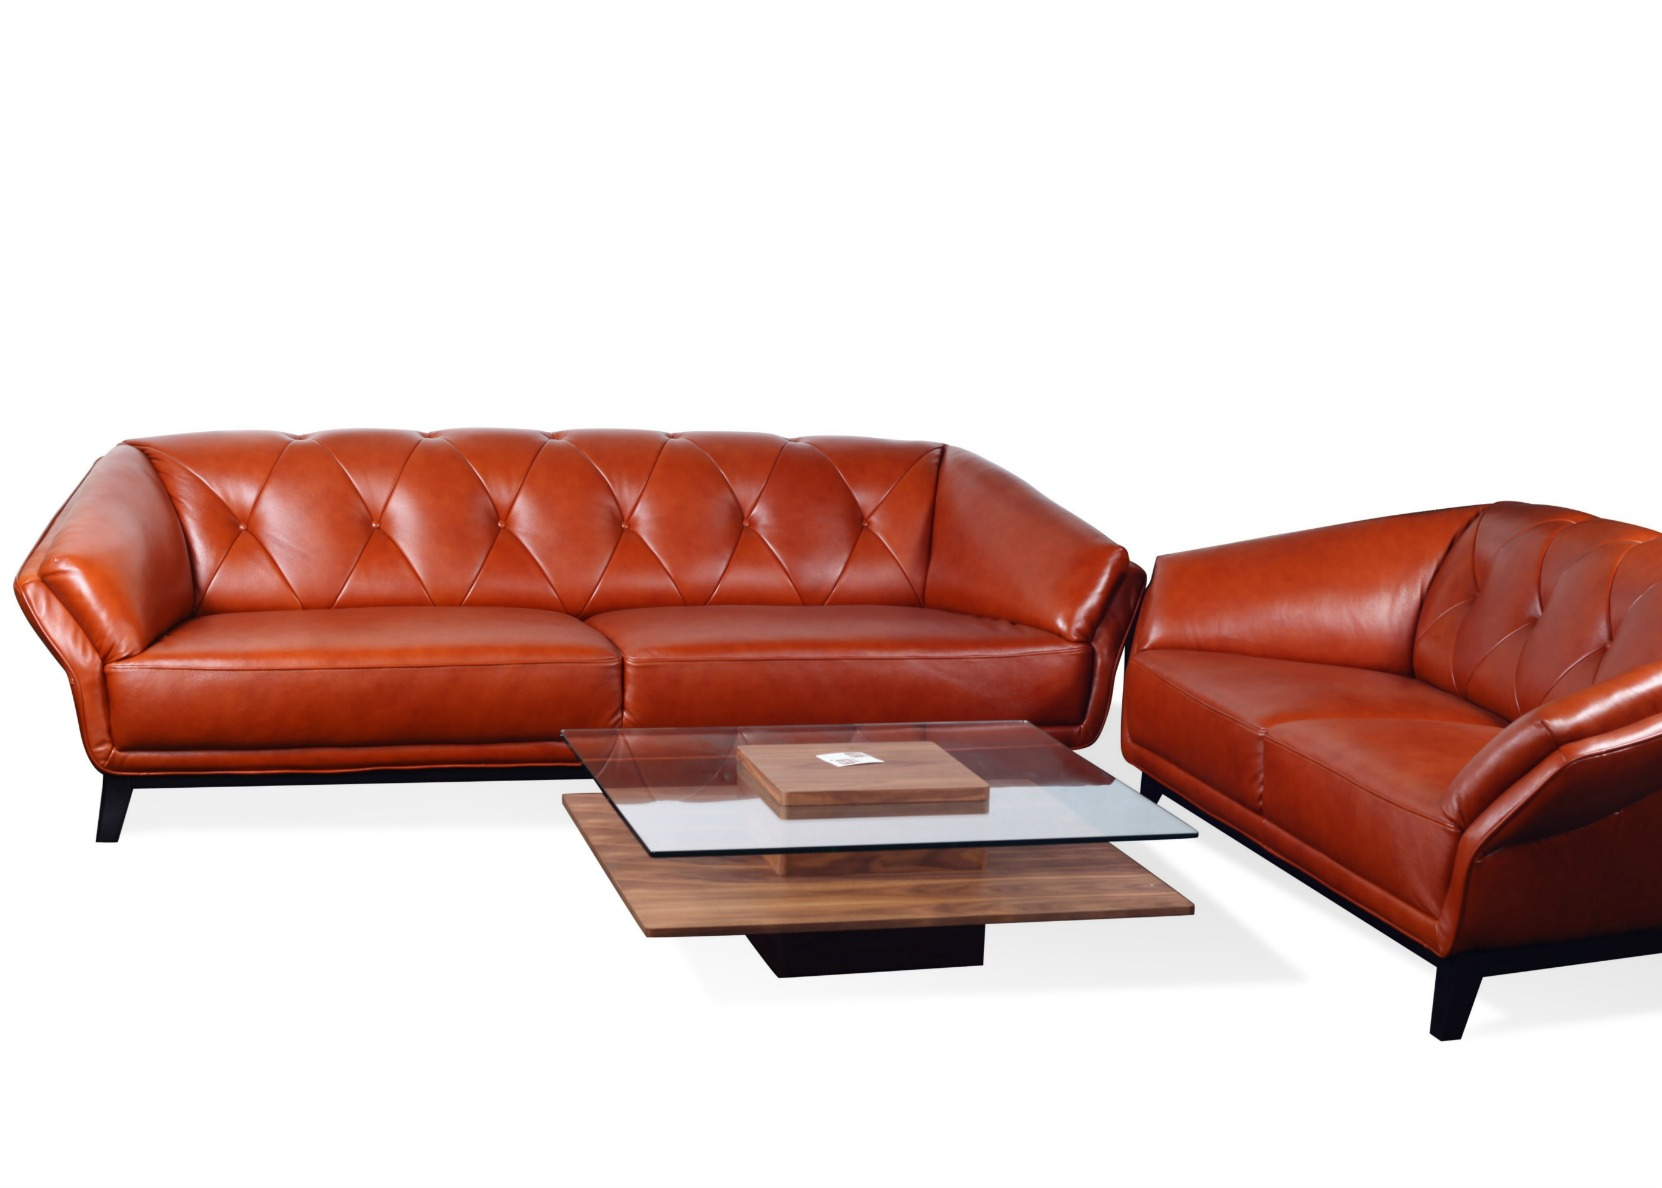 3+2 Sofa Set In Tan Leather U0026 Wood